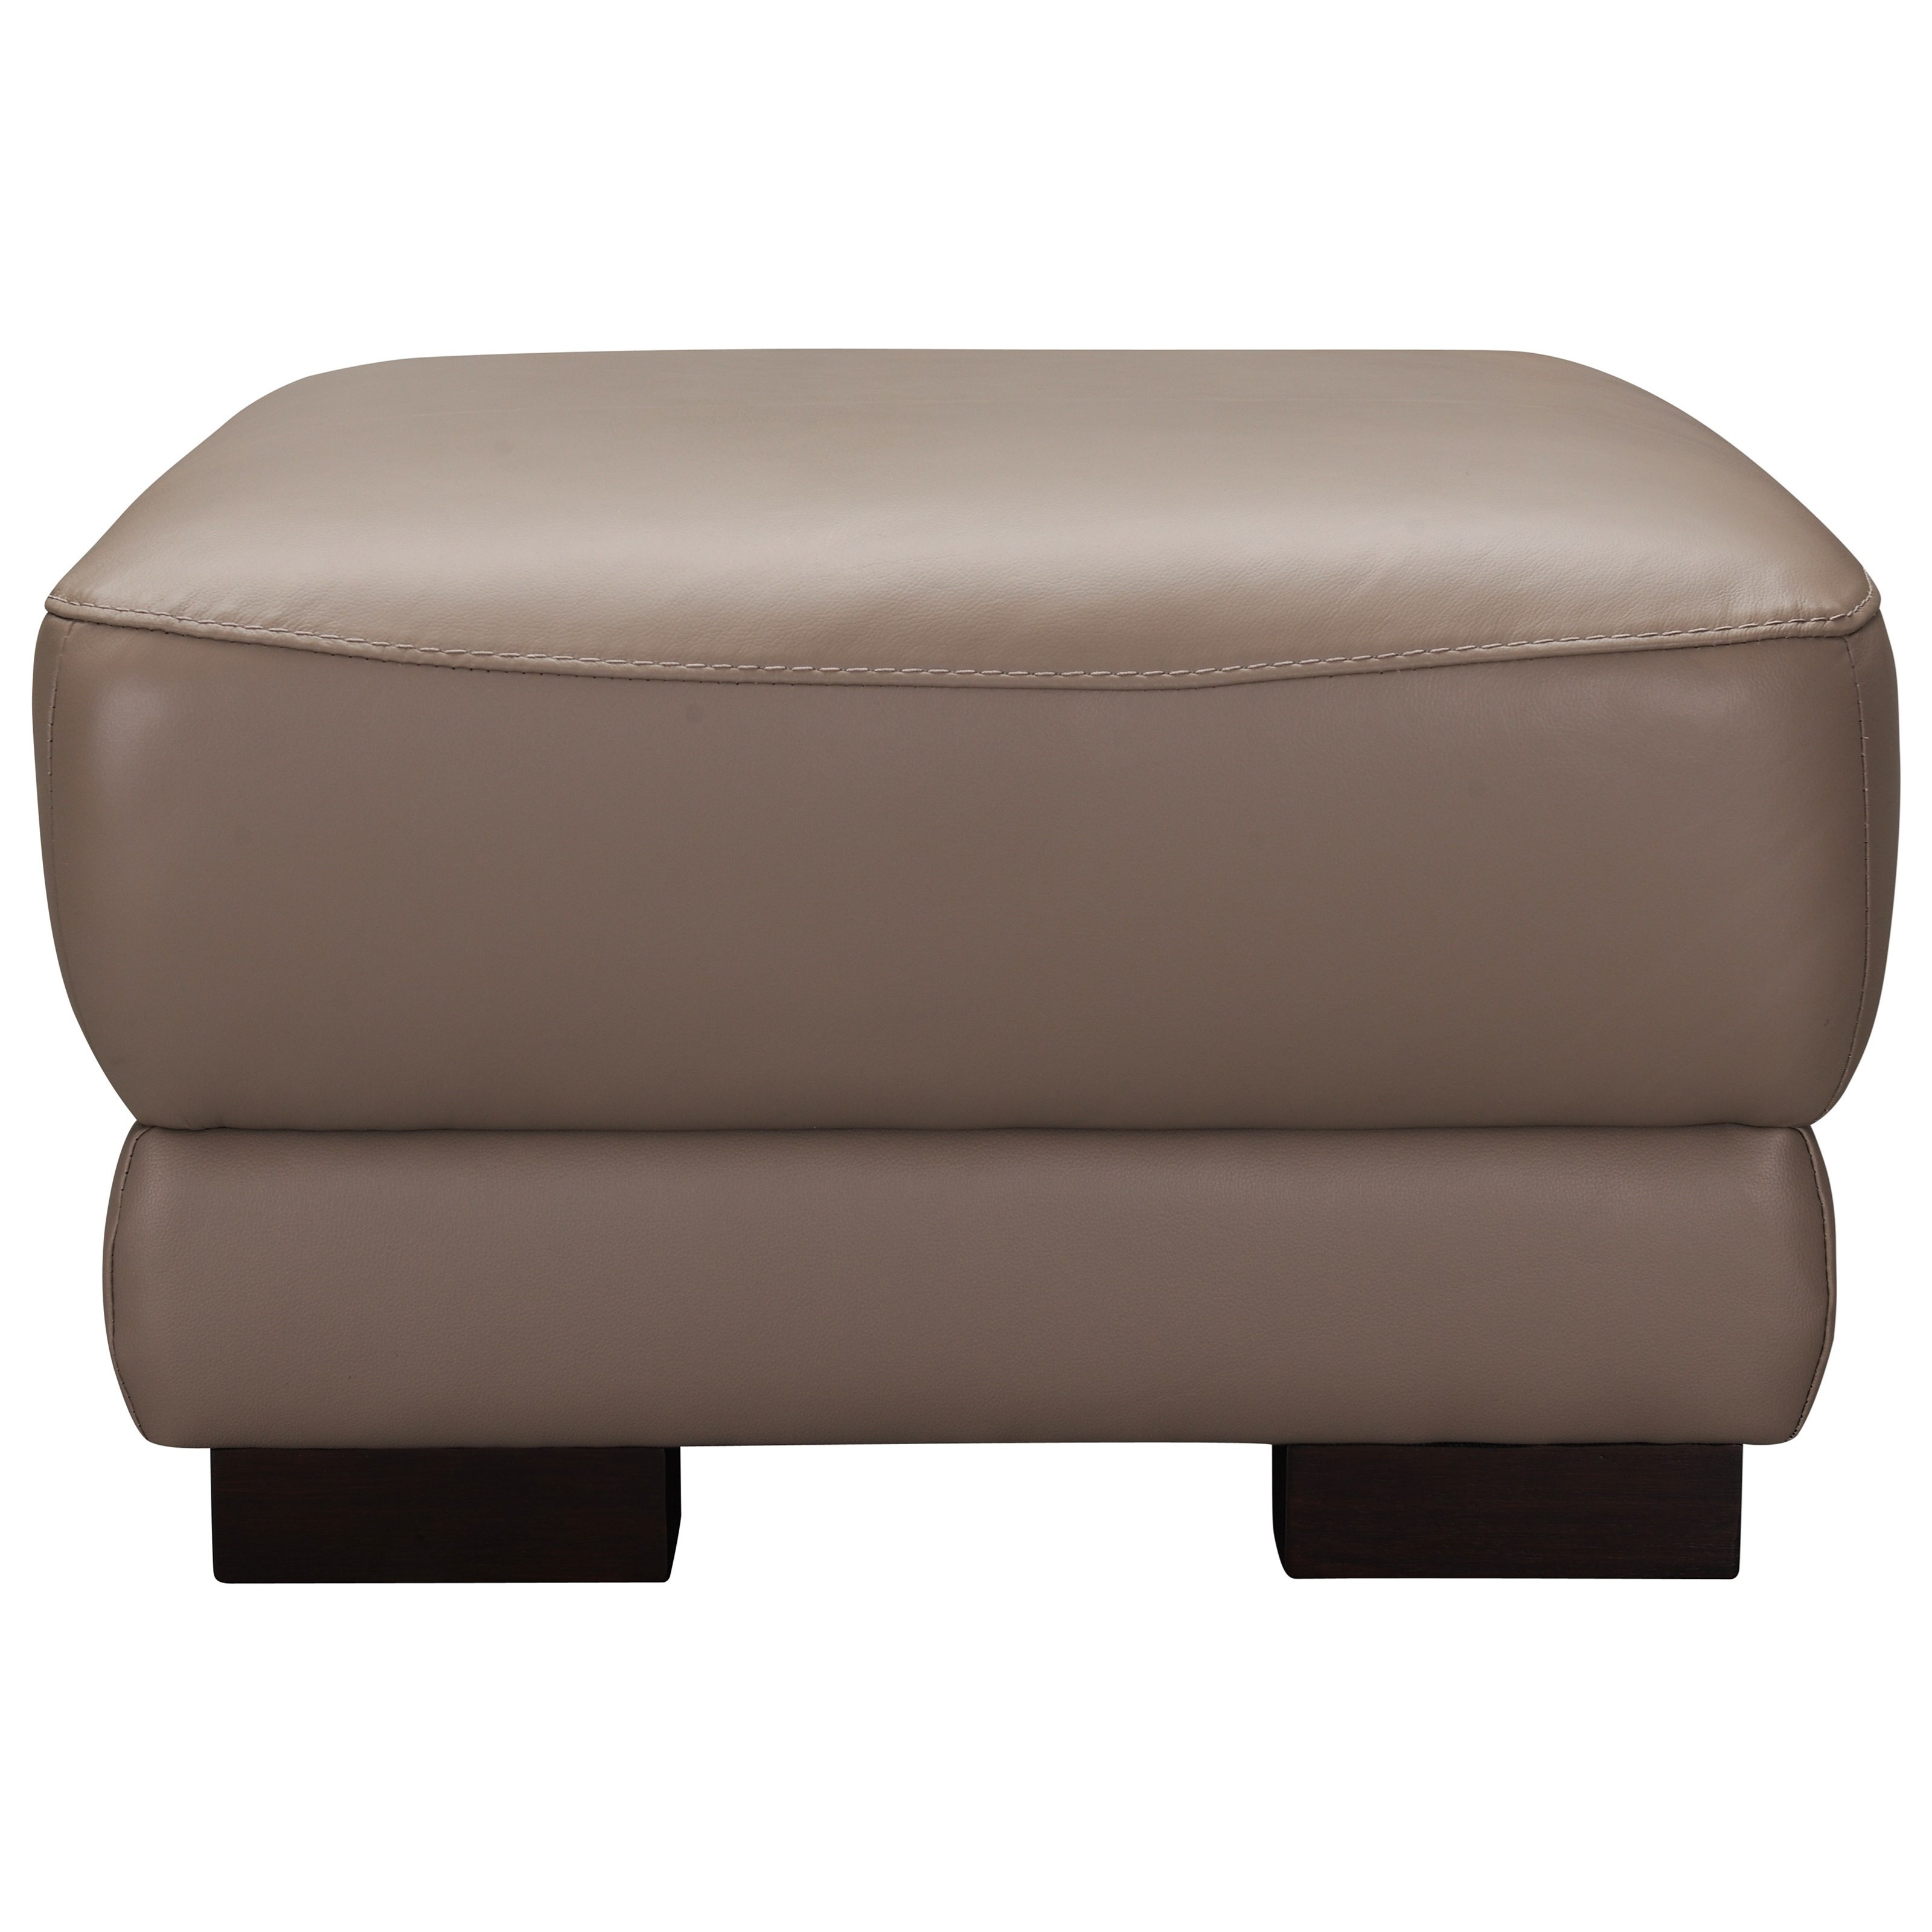 31933 Ottoman by Violino at Furniture Superstore - Rochester, MN